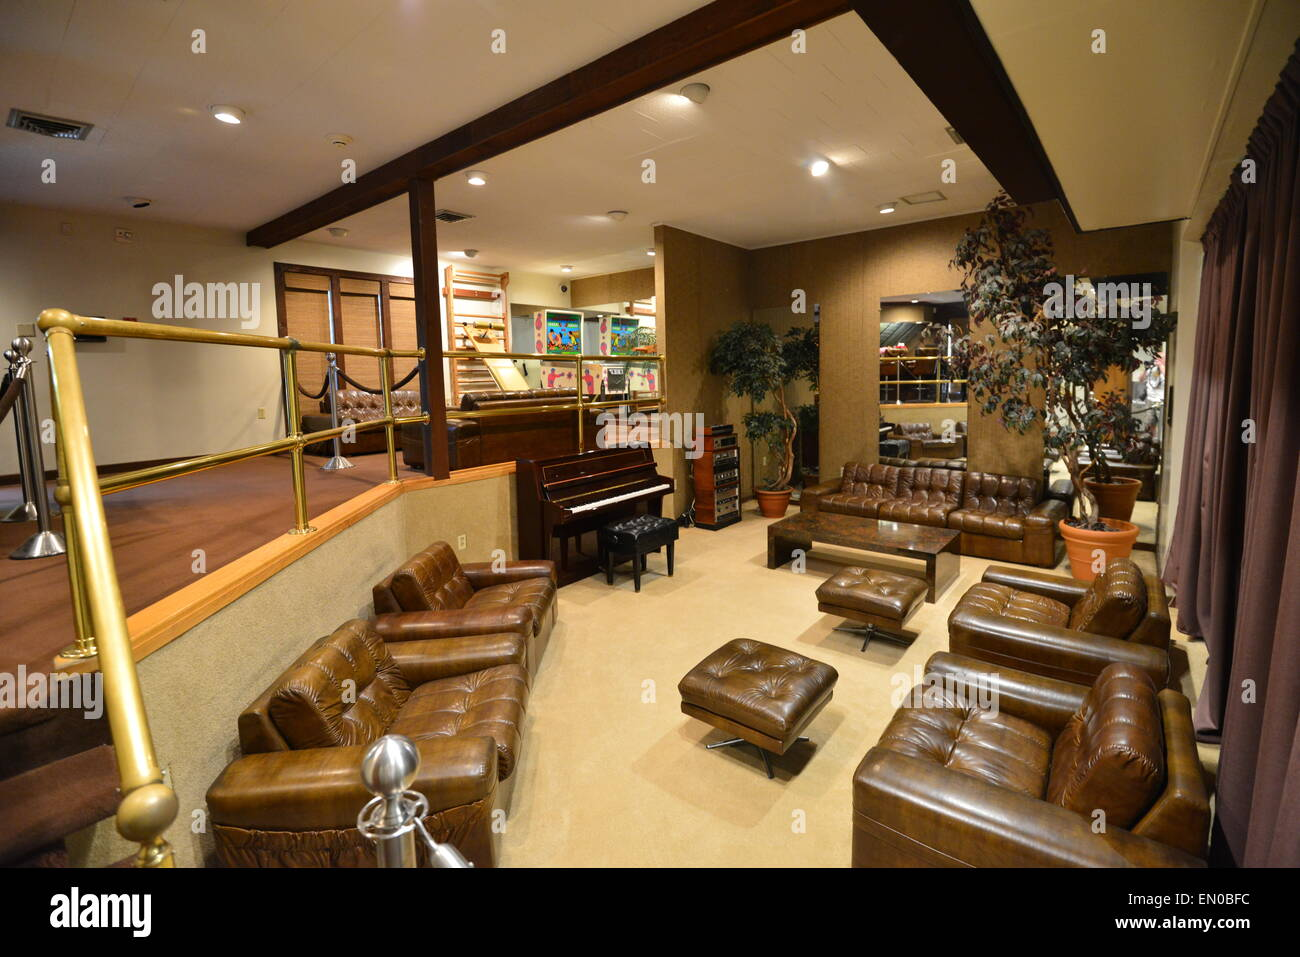 most expensive leather sofas in the world reclining sectional cheap decorating interior of your house images gallery